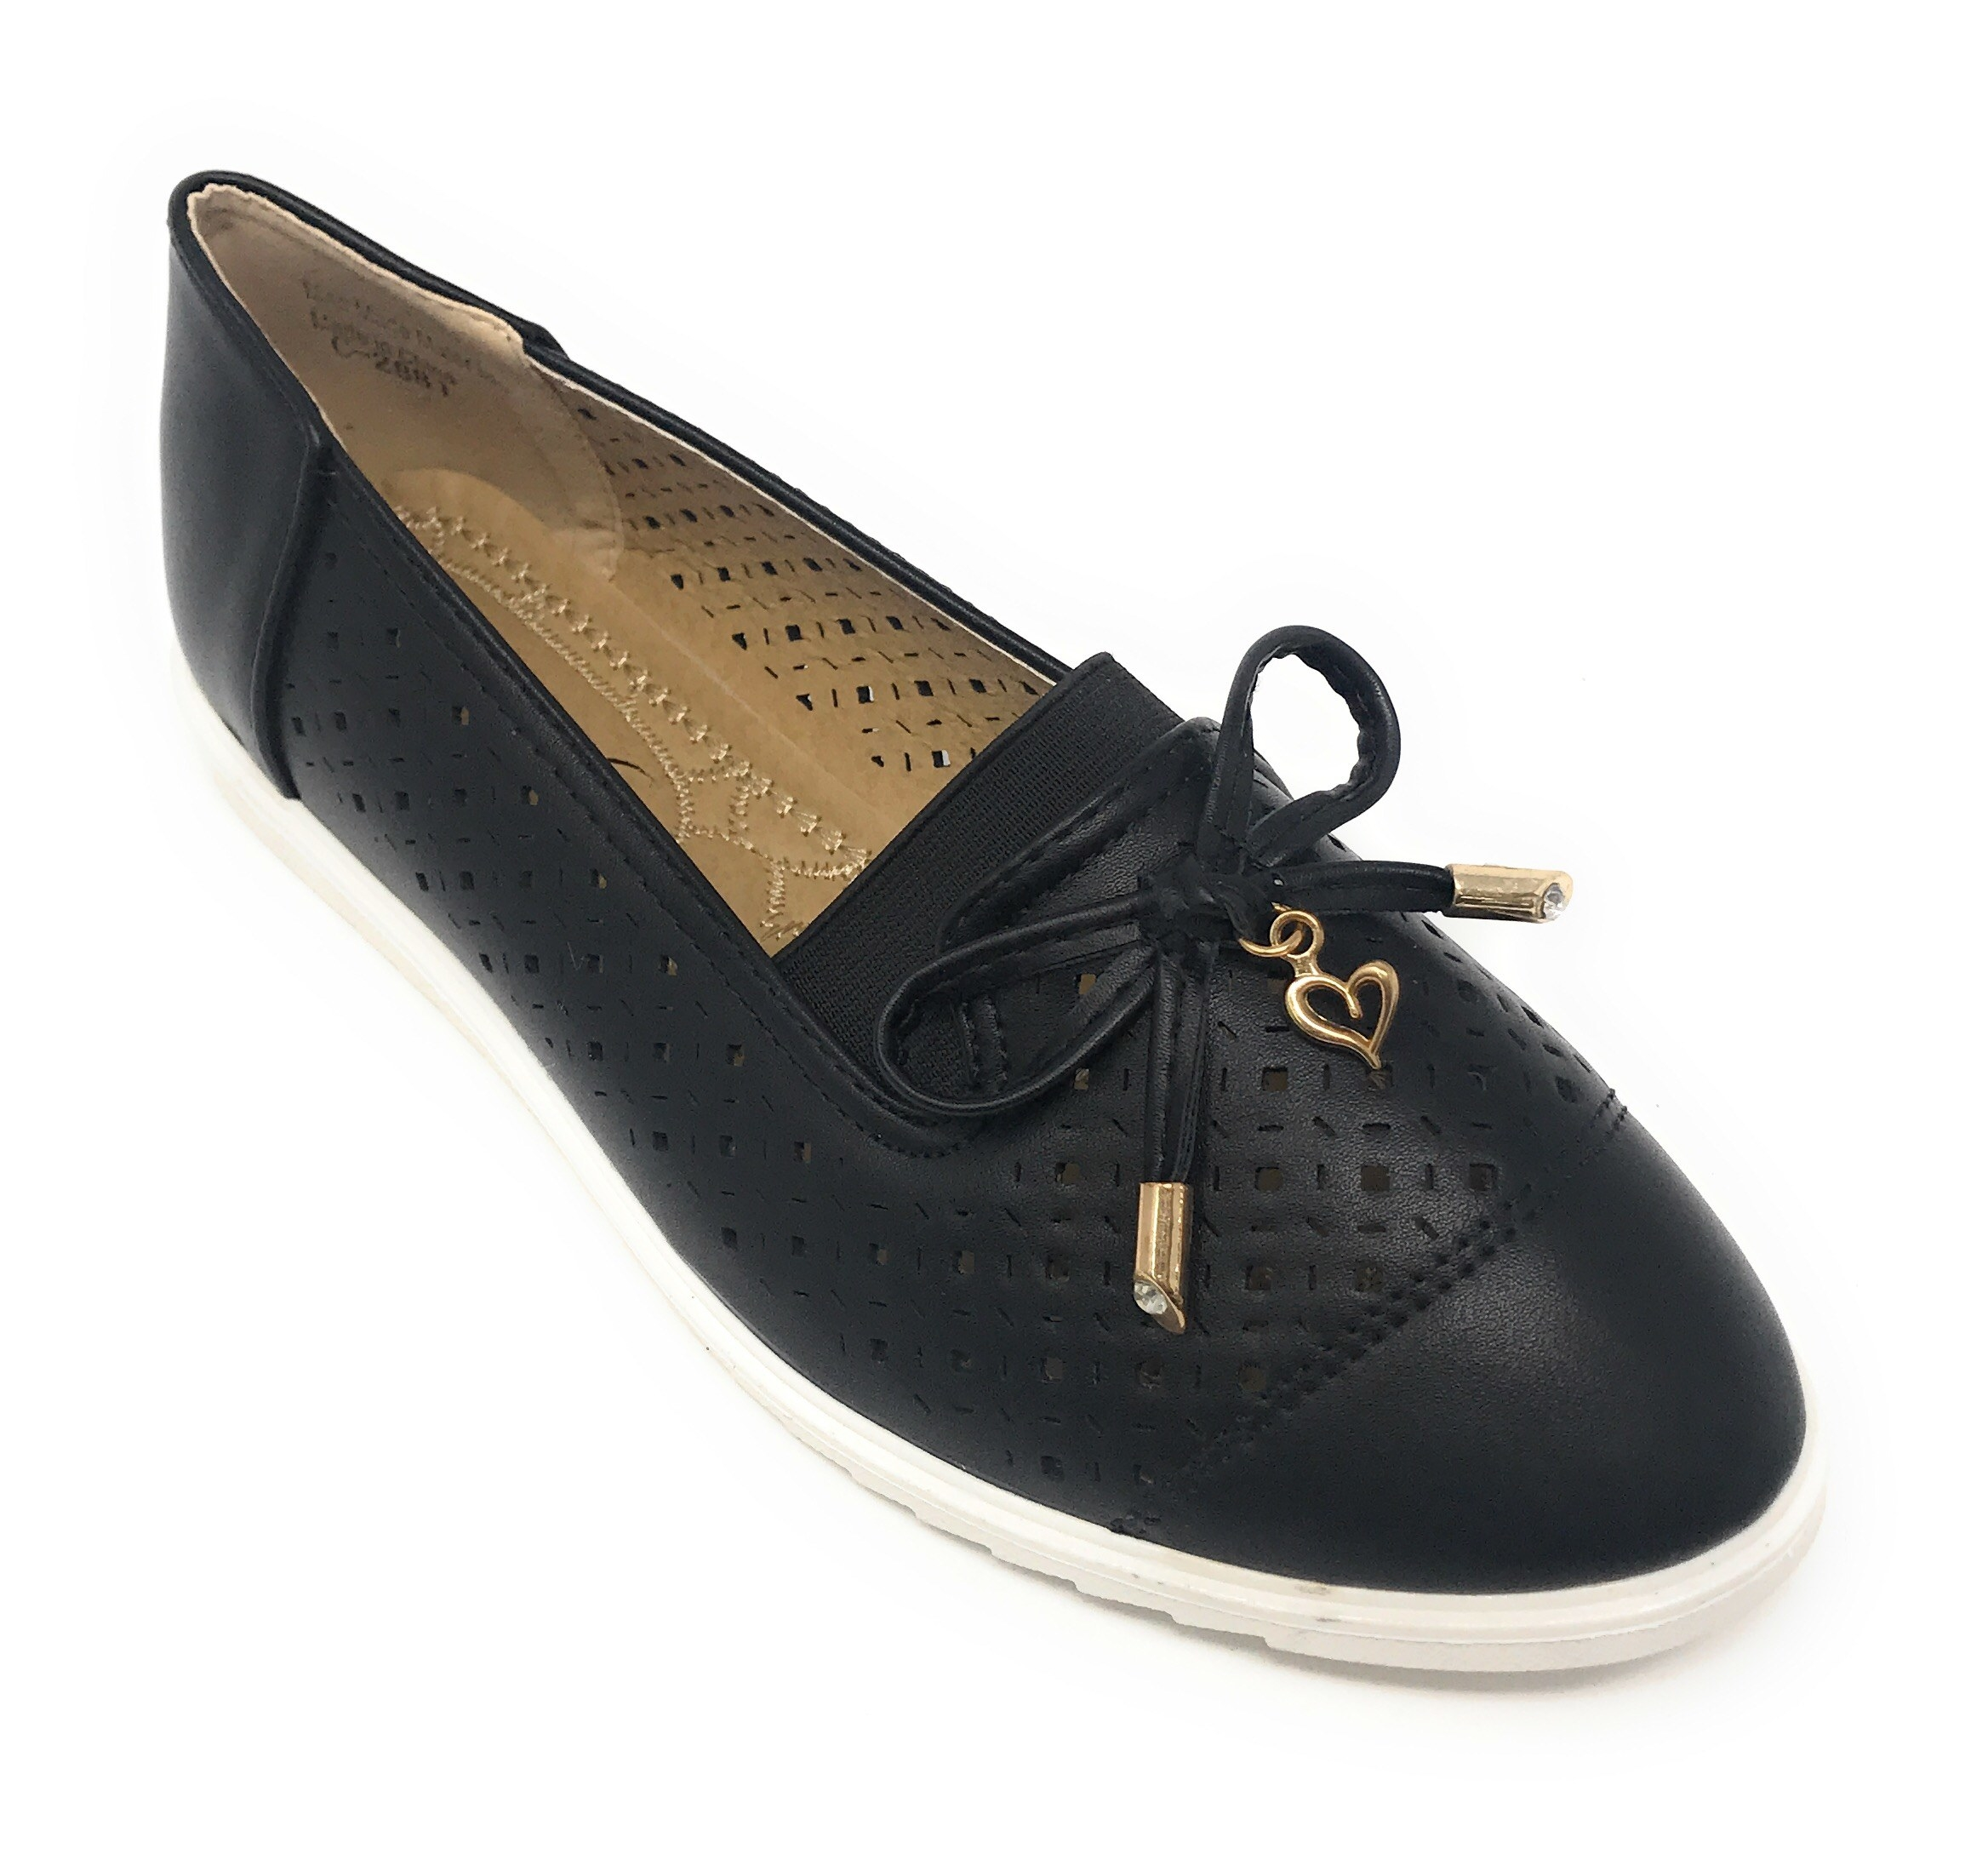 gold heart emblem with bow tie and gold tipping embossed casual flats in black